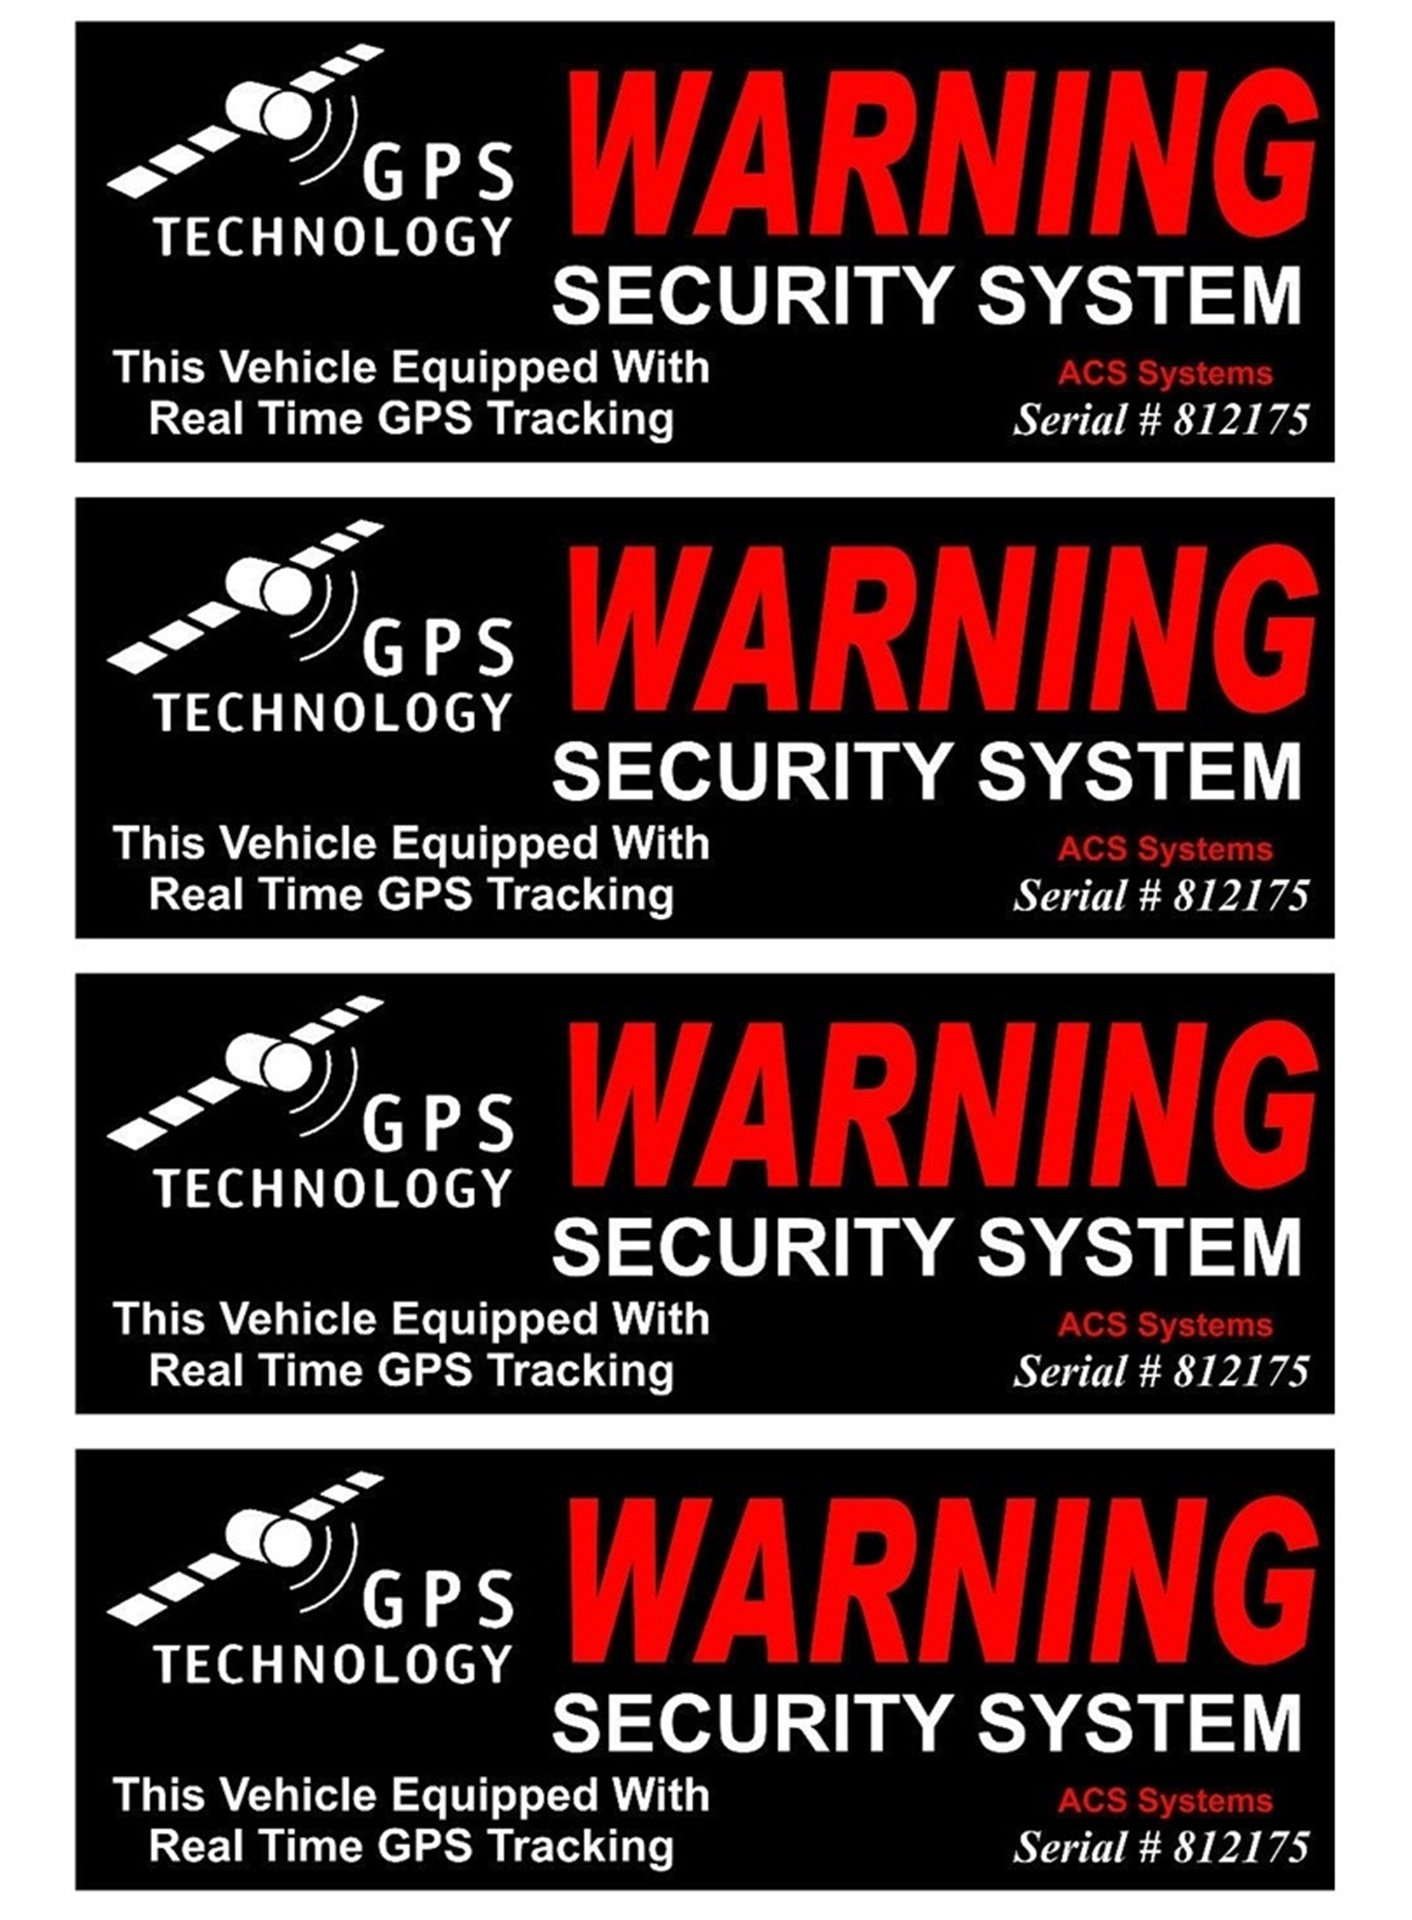 4 Set Acceptable Unique Warning GPS Tracking Security System Technology This Vehicle Equipped with Real Time Outside Adhesive Stickers Sign CCTV Premises Fence Property Yard Signs Size 4.5''x1.5''